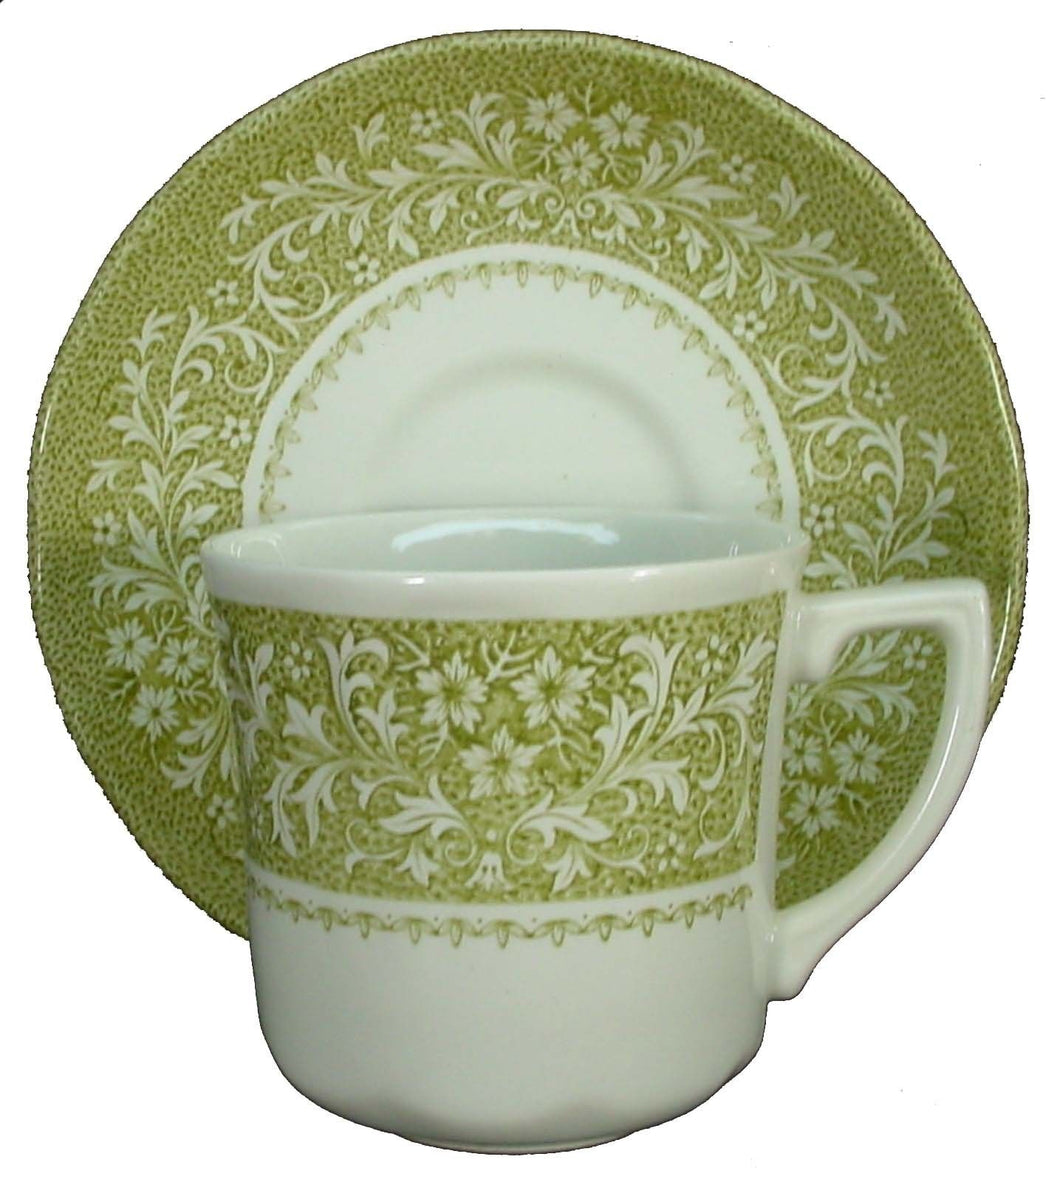 J&G MEAKIN china Sherwood Green CUP & SAUCER Set 3